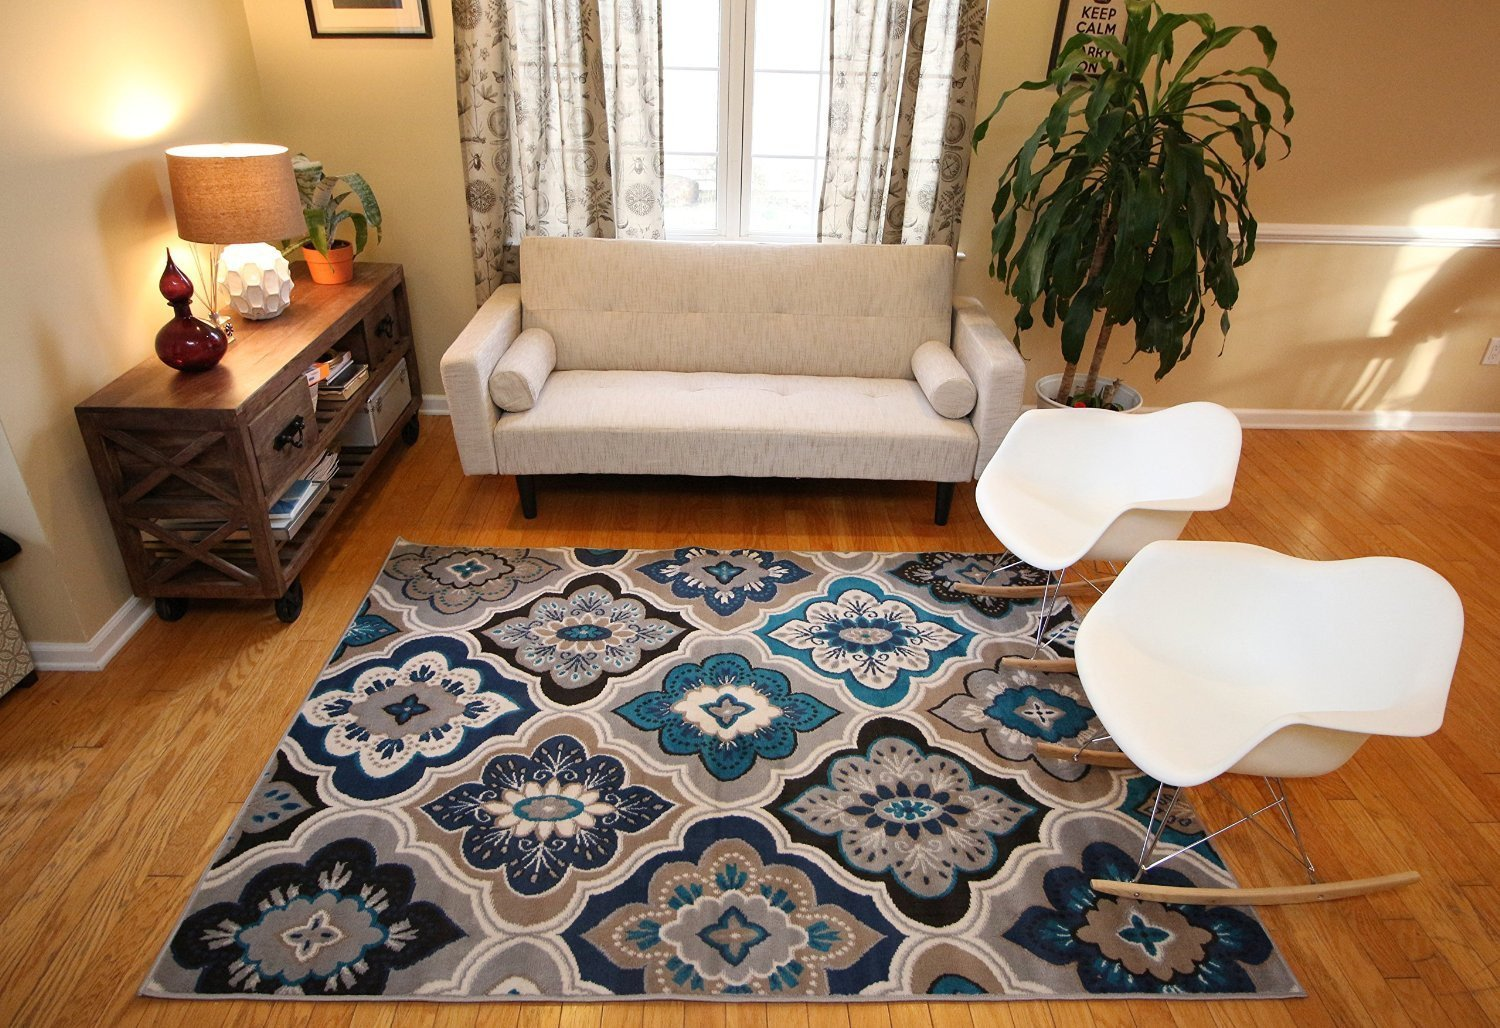 Top 10 cheap area rugs for your living room bargain area rugs